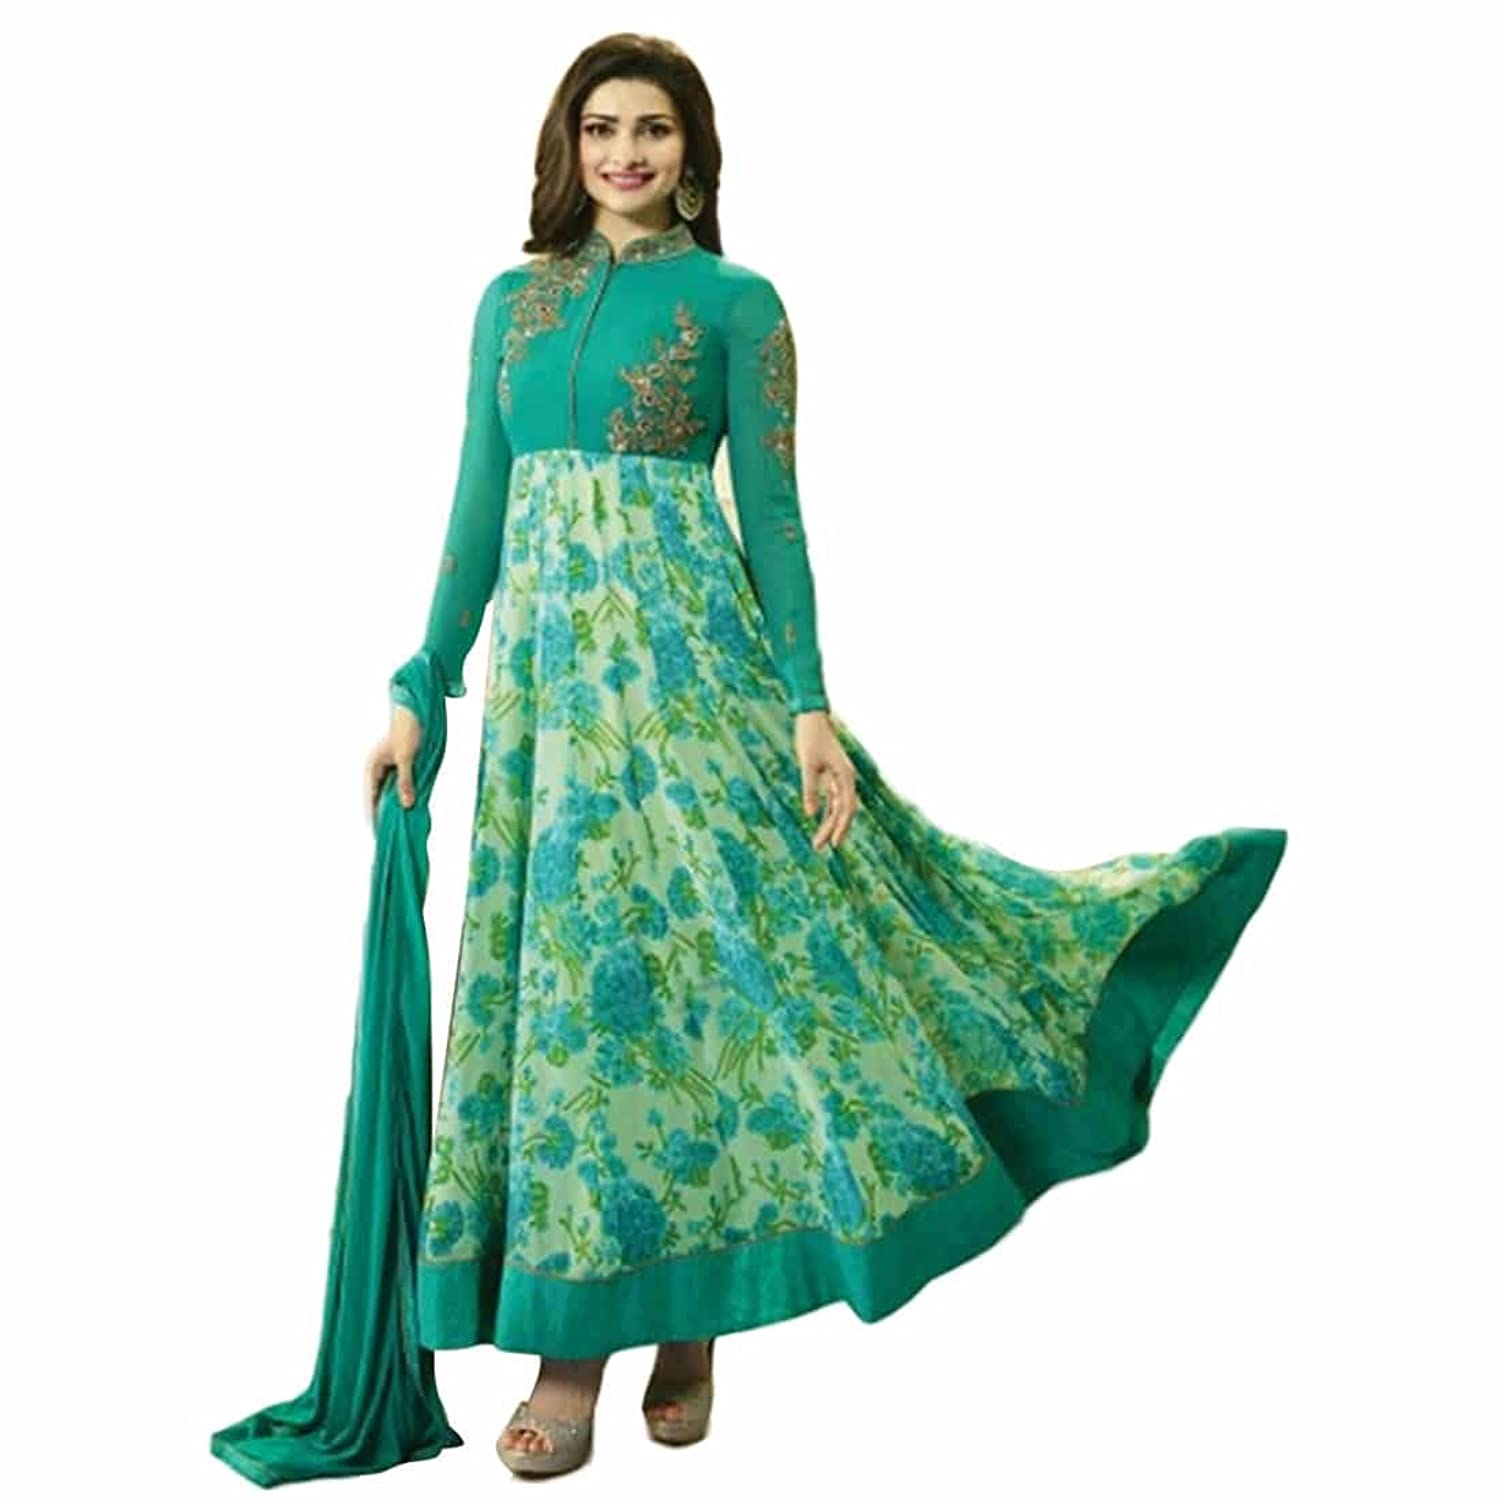 Latest fashion dresses for women